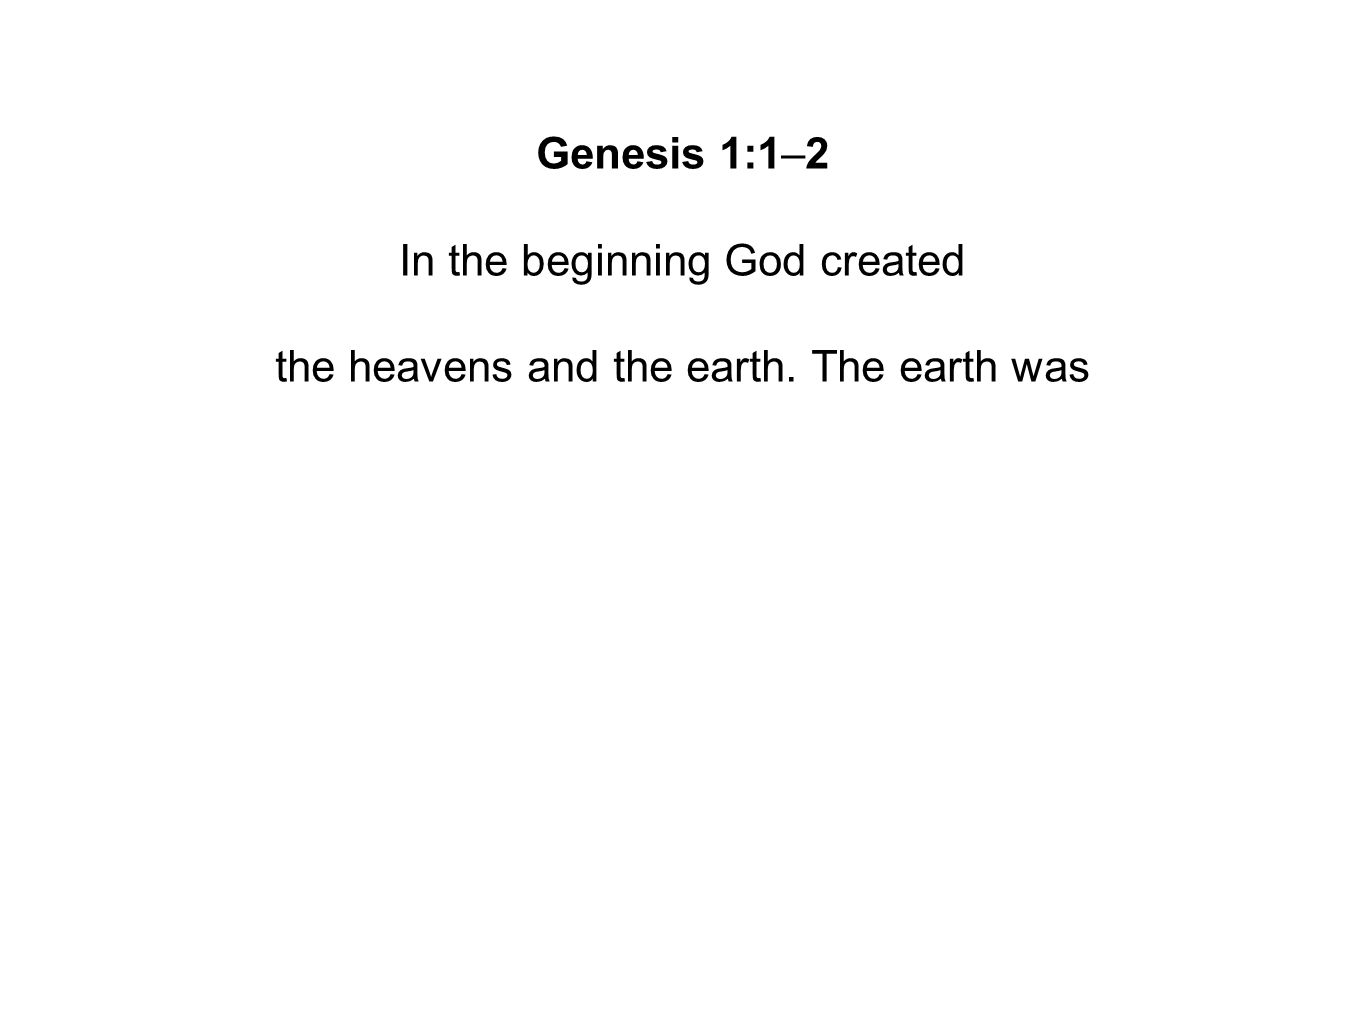 Genesis 1:1–2 In the beginning God created the heavens and the earth. The earth was